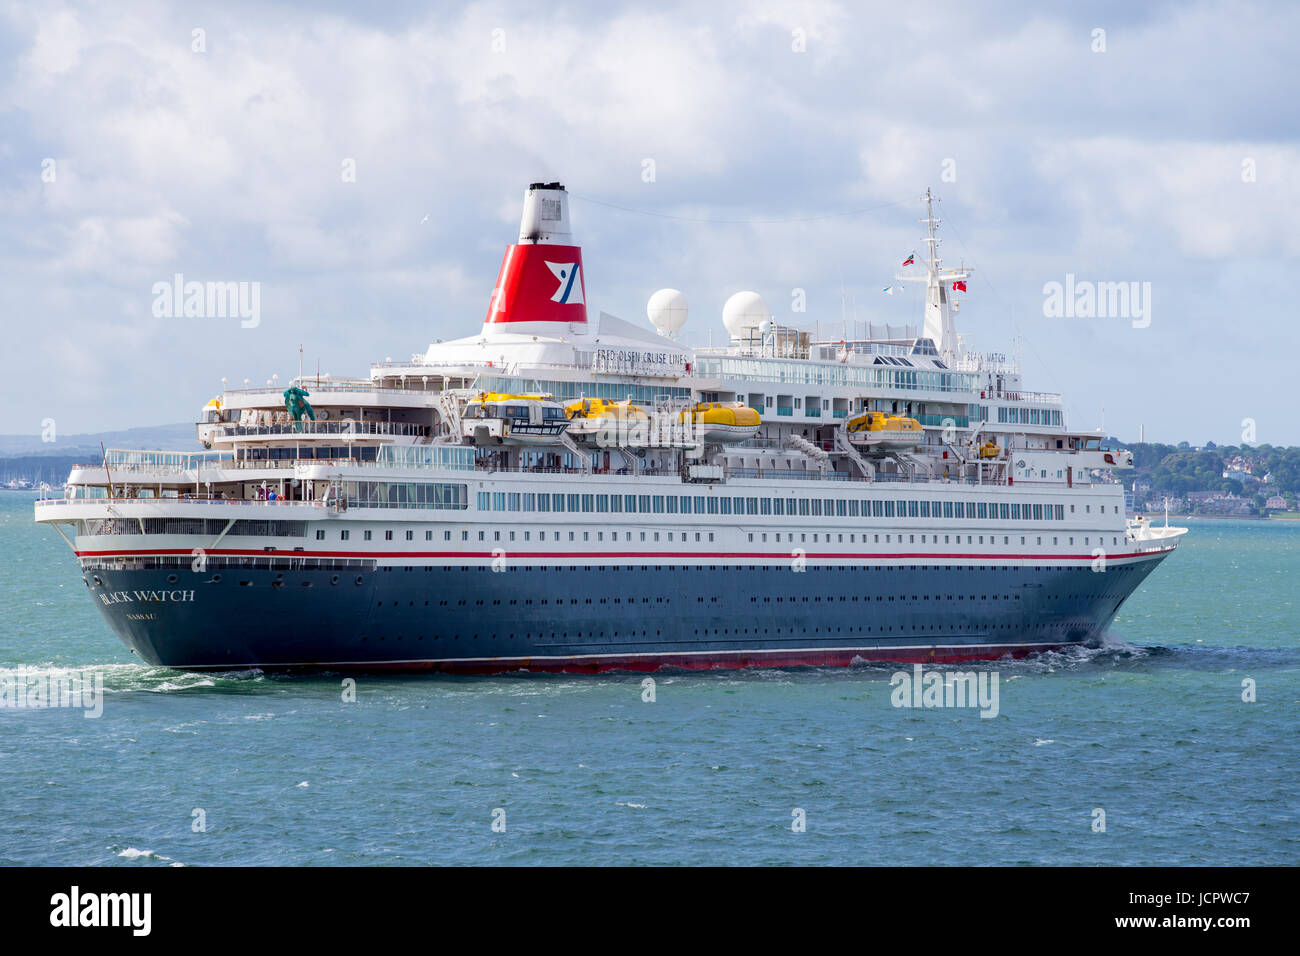 MS Black Watch cruise ship leaving Southampton docks in the Solent - Stock Image